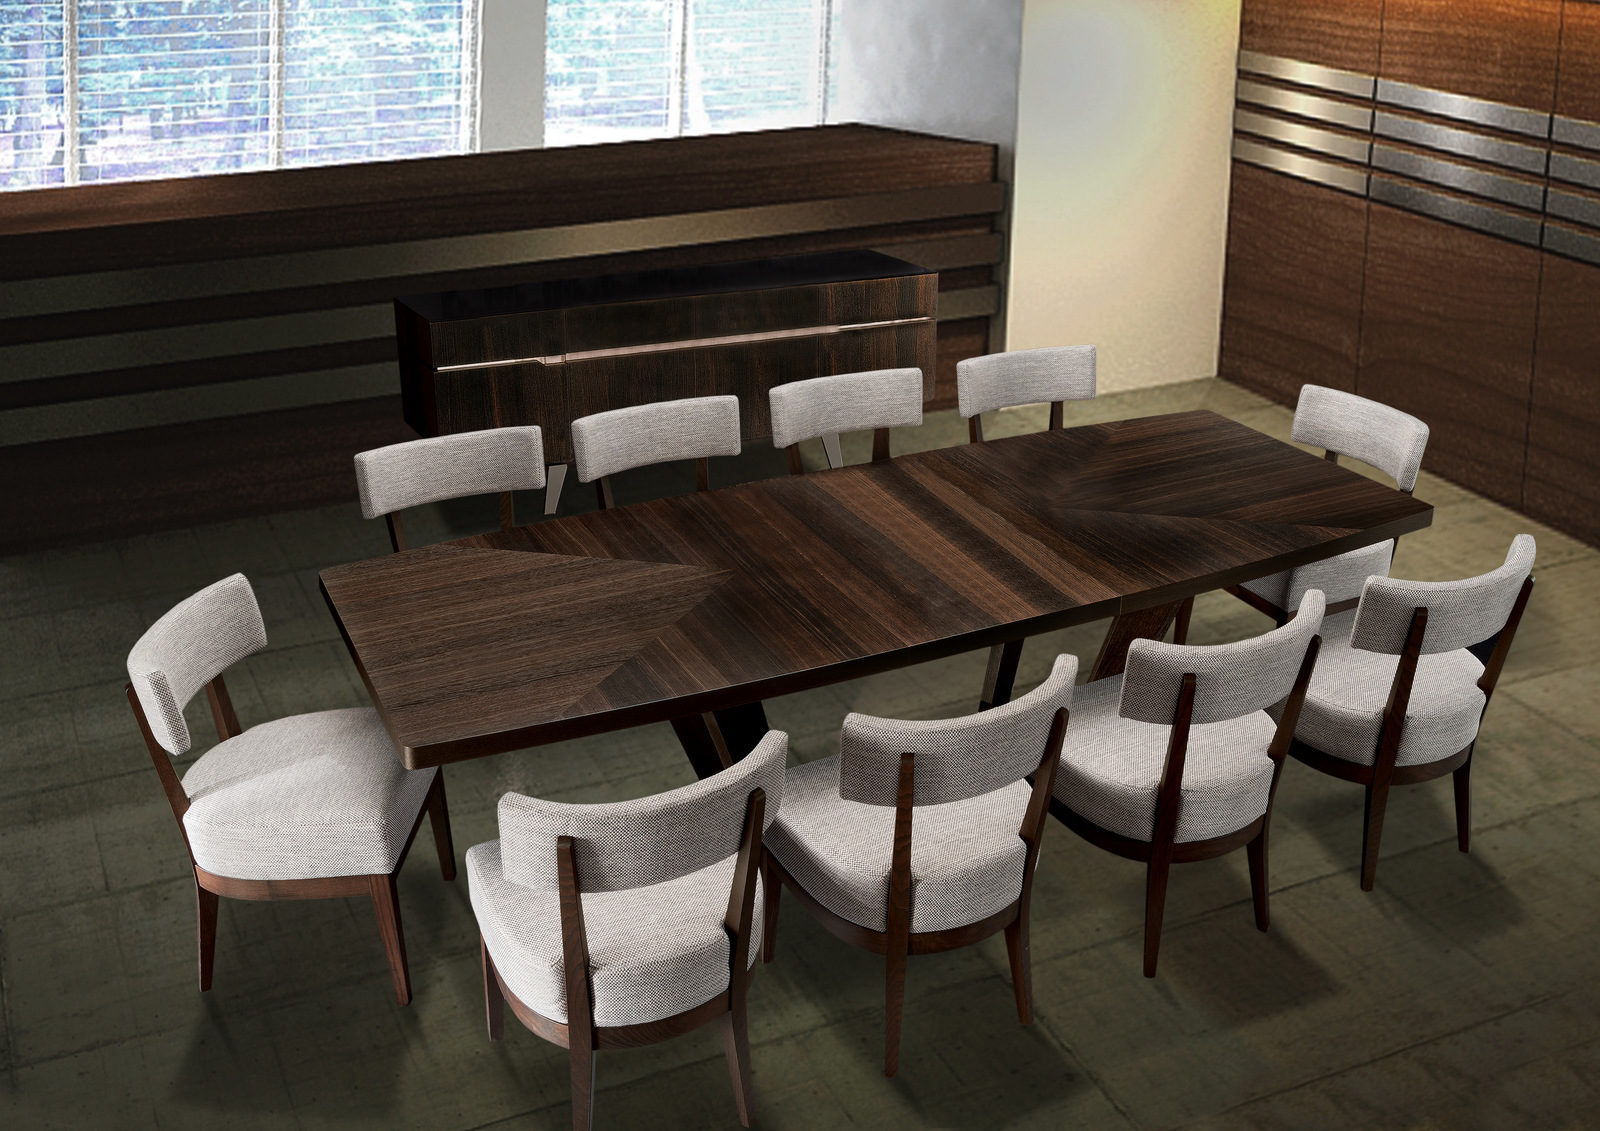 acerno zoli contemporary living 11223 | acerno dining set